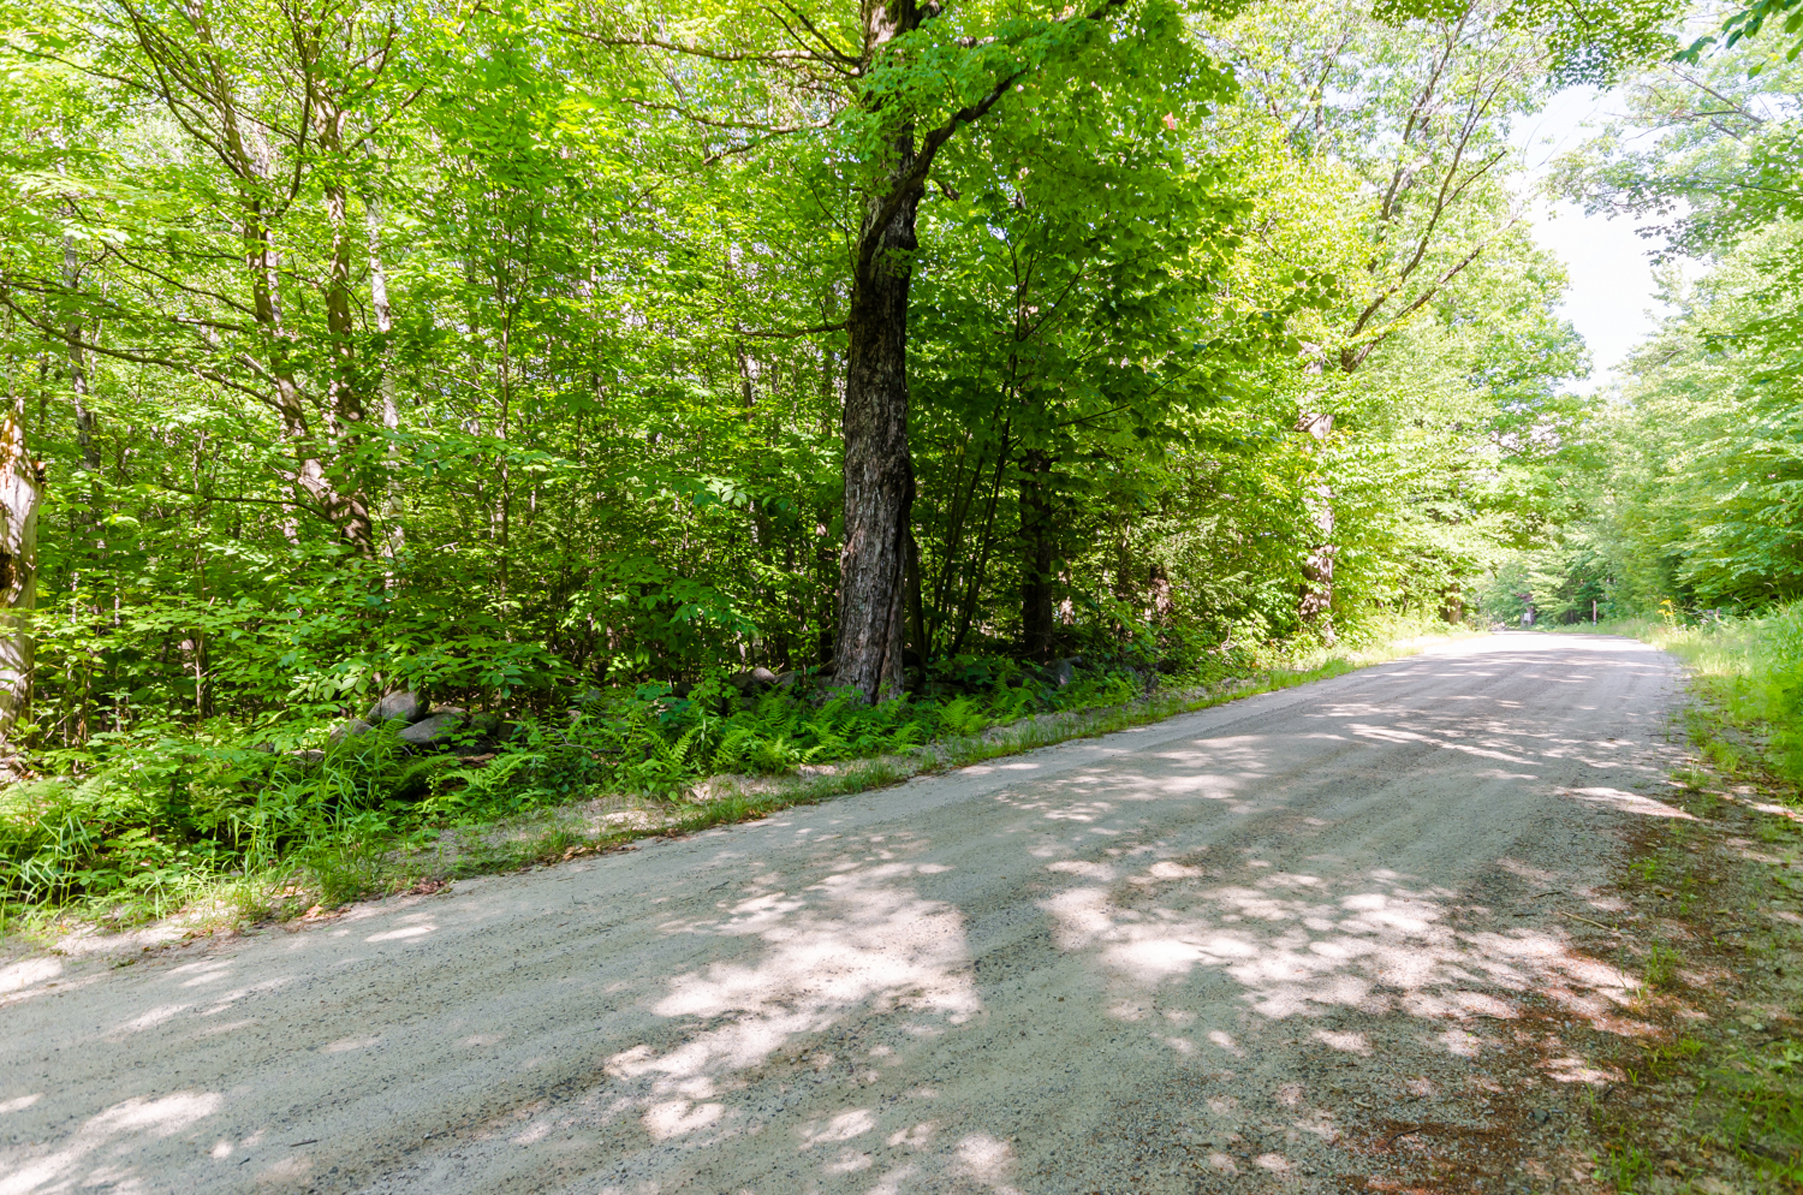 Land for Sale at Lot 13 Mountain Road, Francestown Lot 13 Mountain Rd Francestown, New Hampshire, 03043 United States